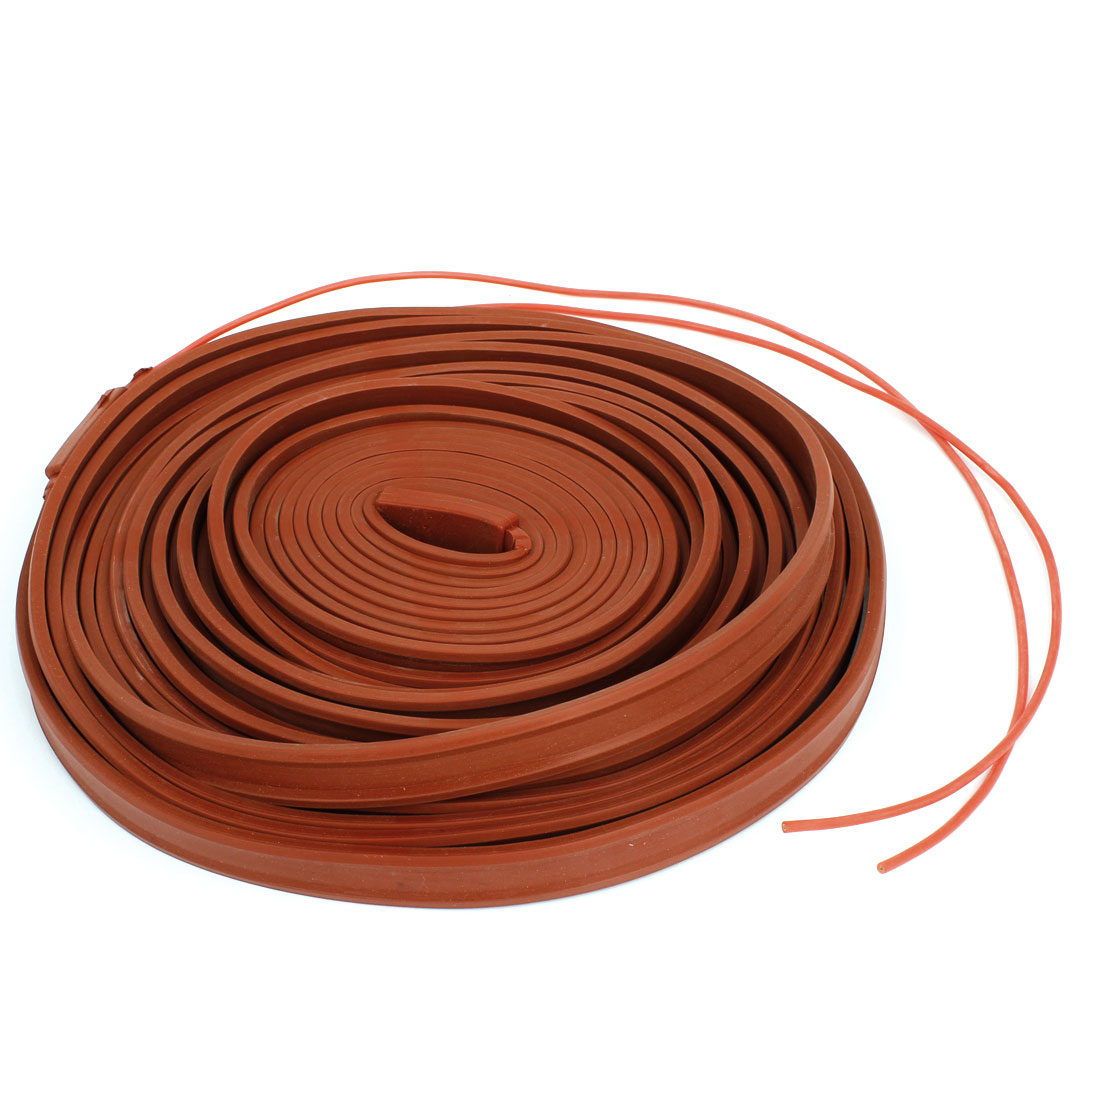 15mm Wide 10M 32.8Ft Length Waterproof Silicone Band Heater Strip 110V